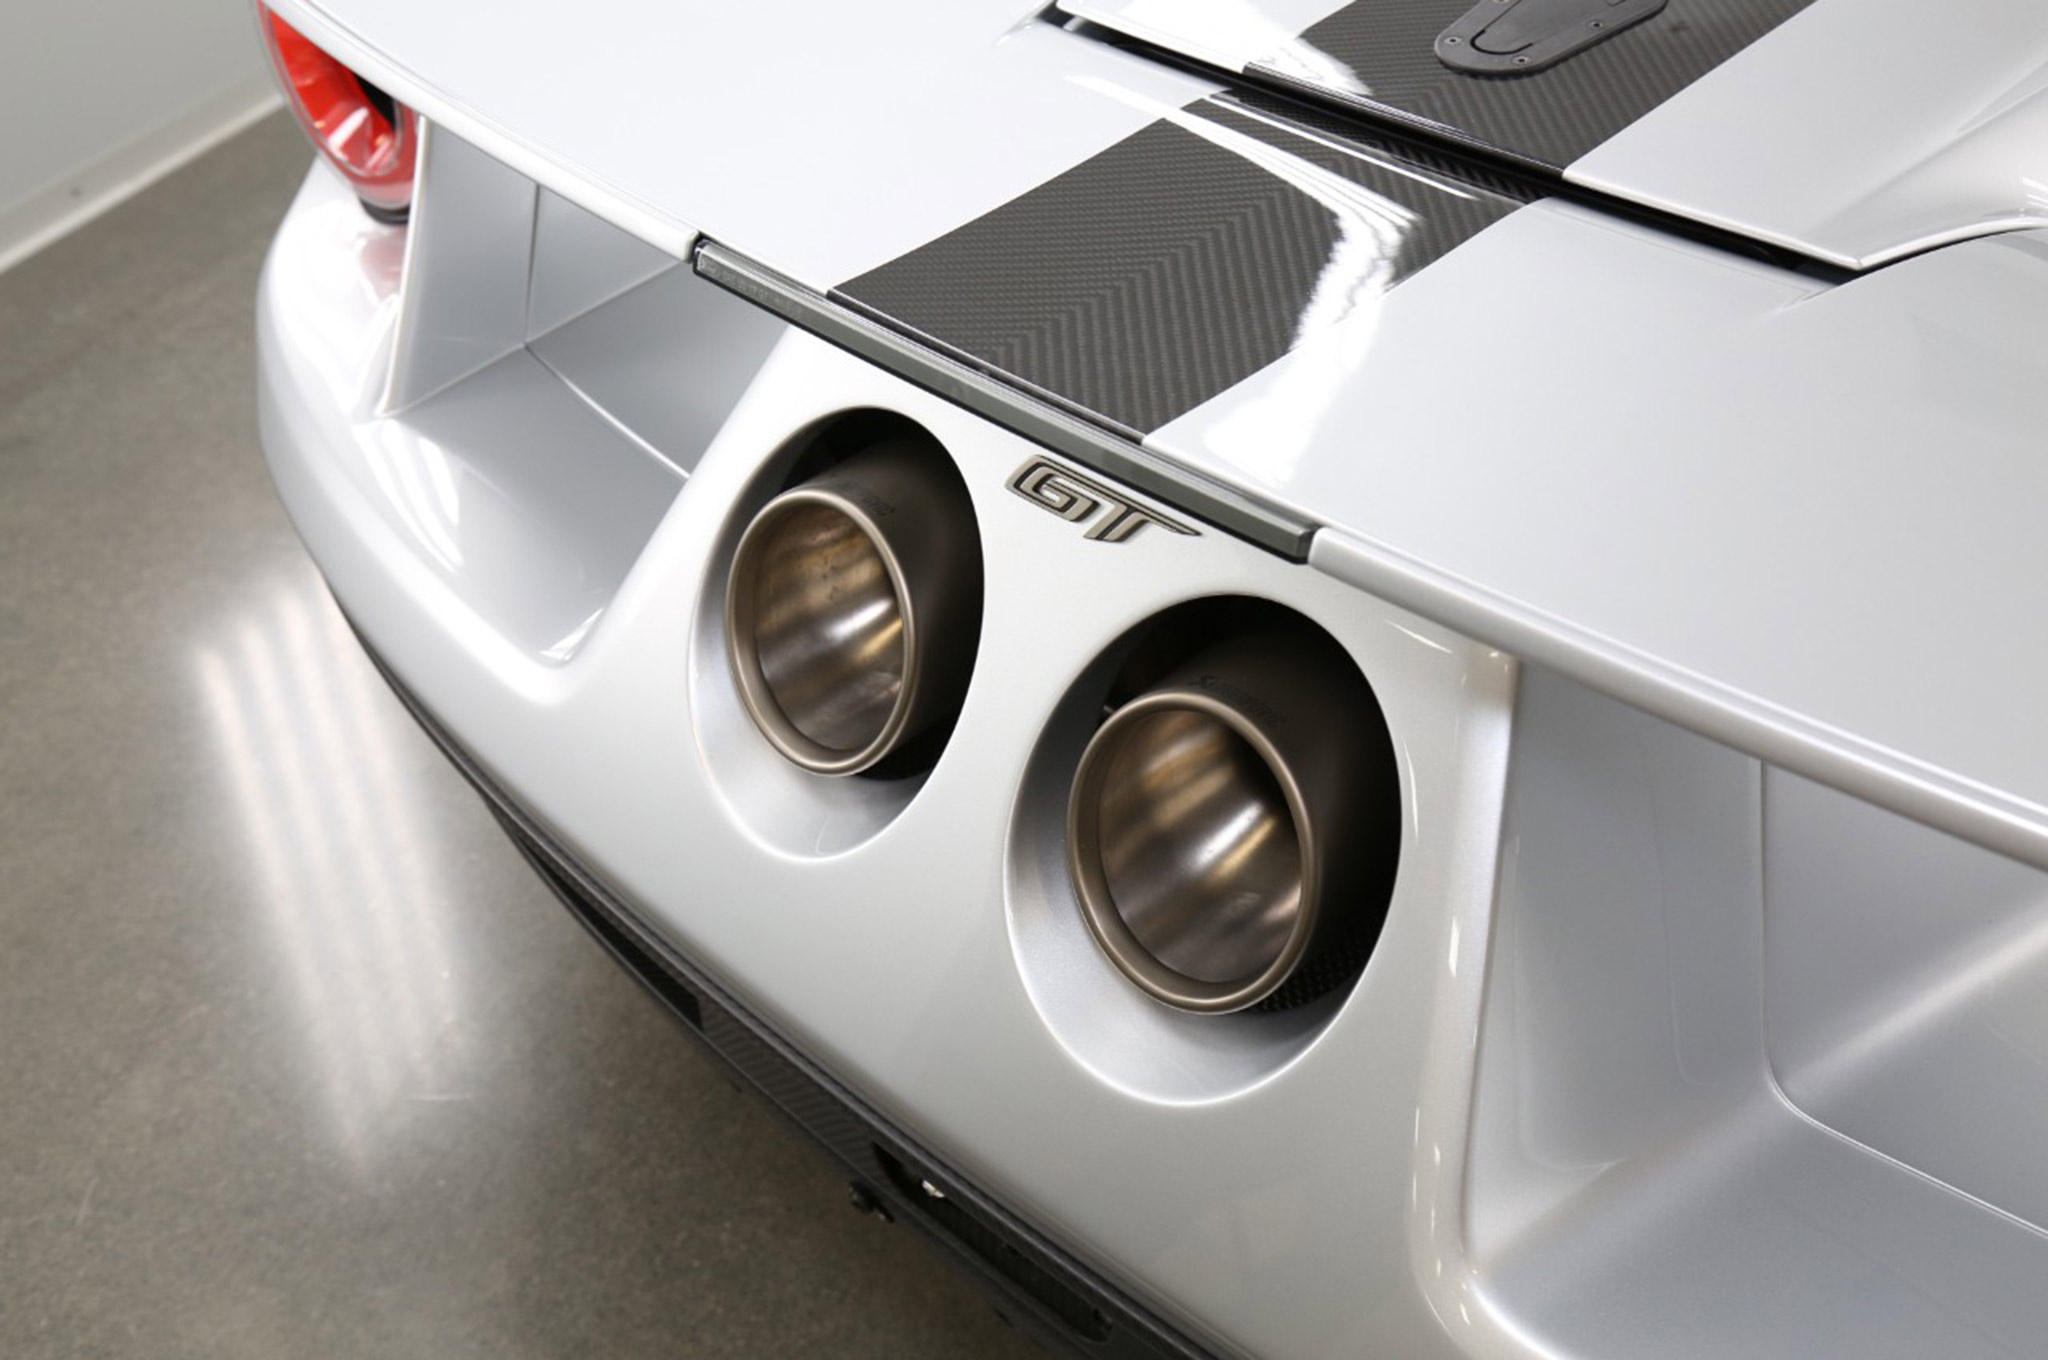 2017 Ford GT Competition Series 003 Rear Exhaust Tips